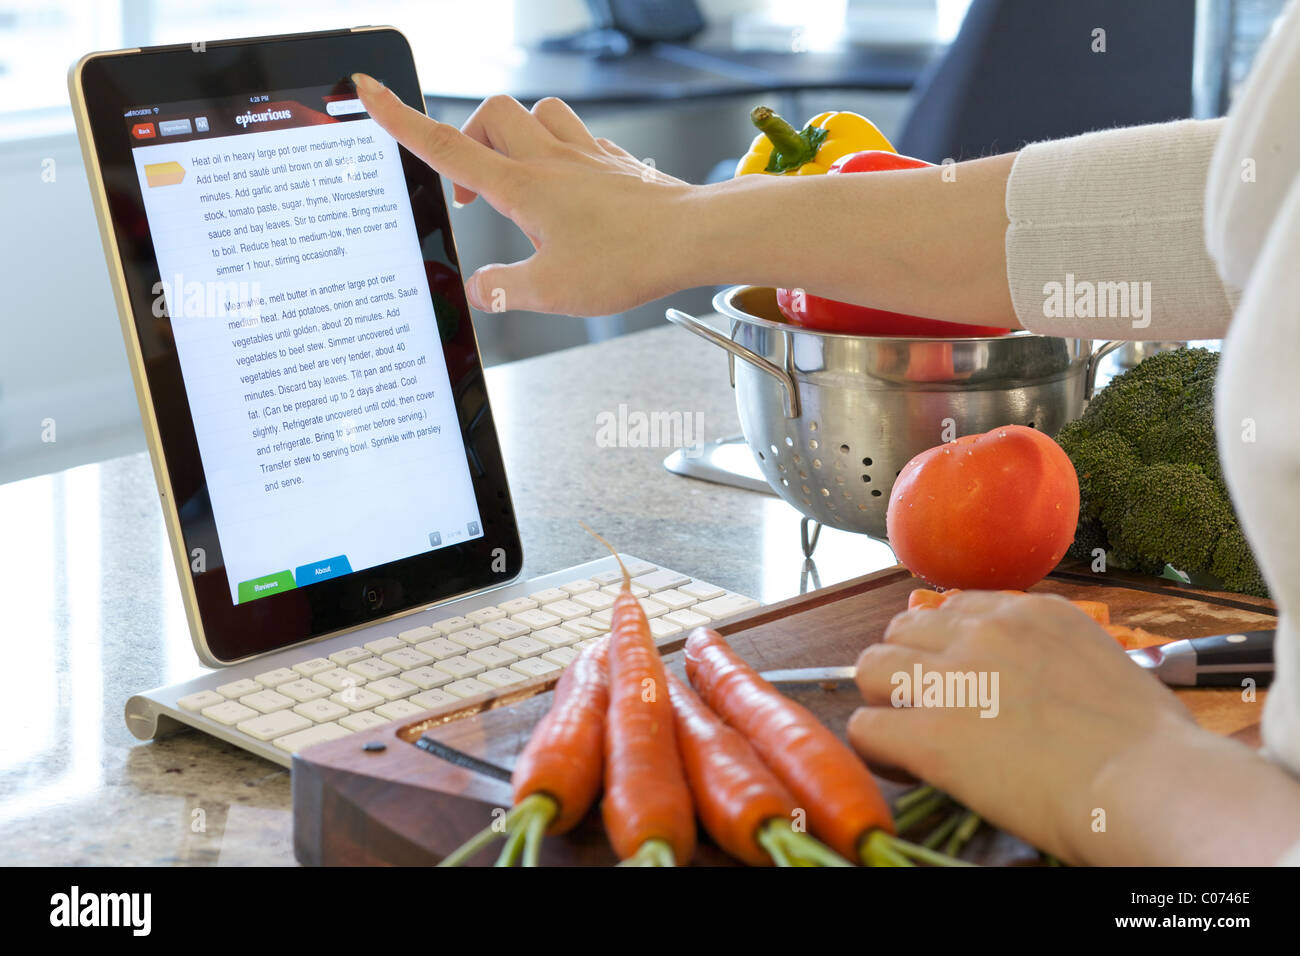 Woman browsing cooking instruction online with Epicurious iPad cooking app - Stock Image